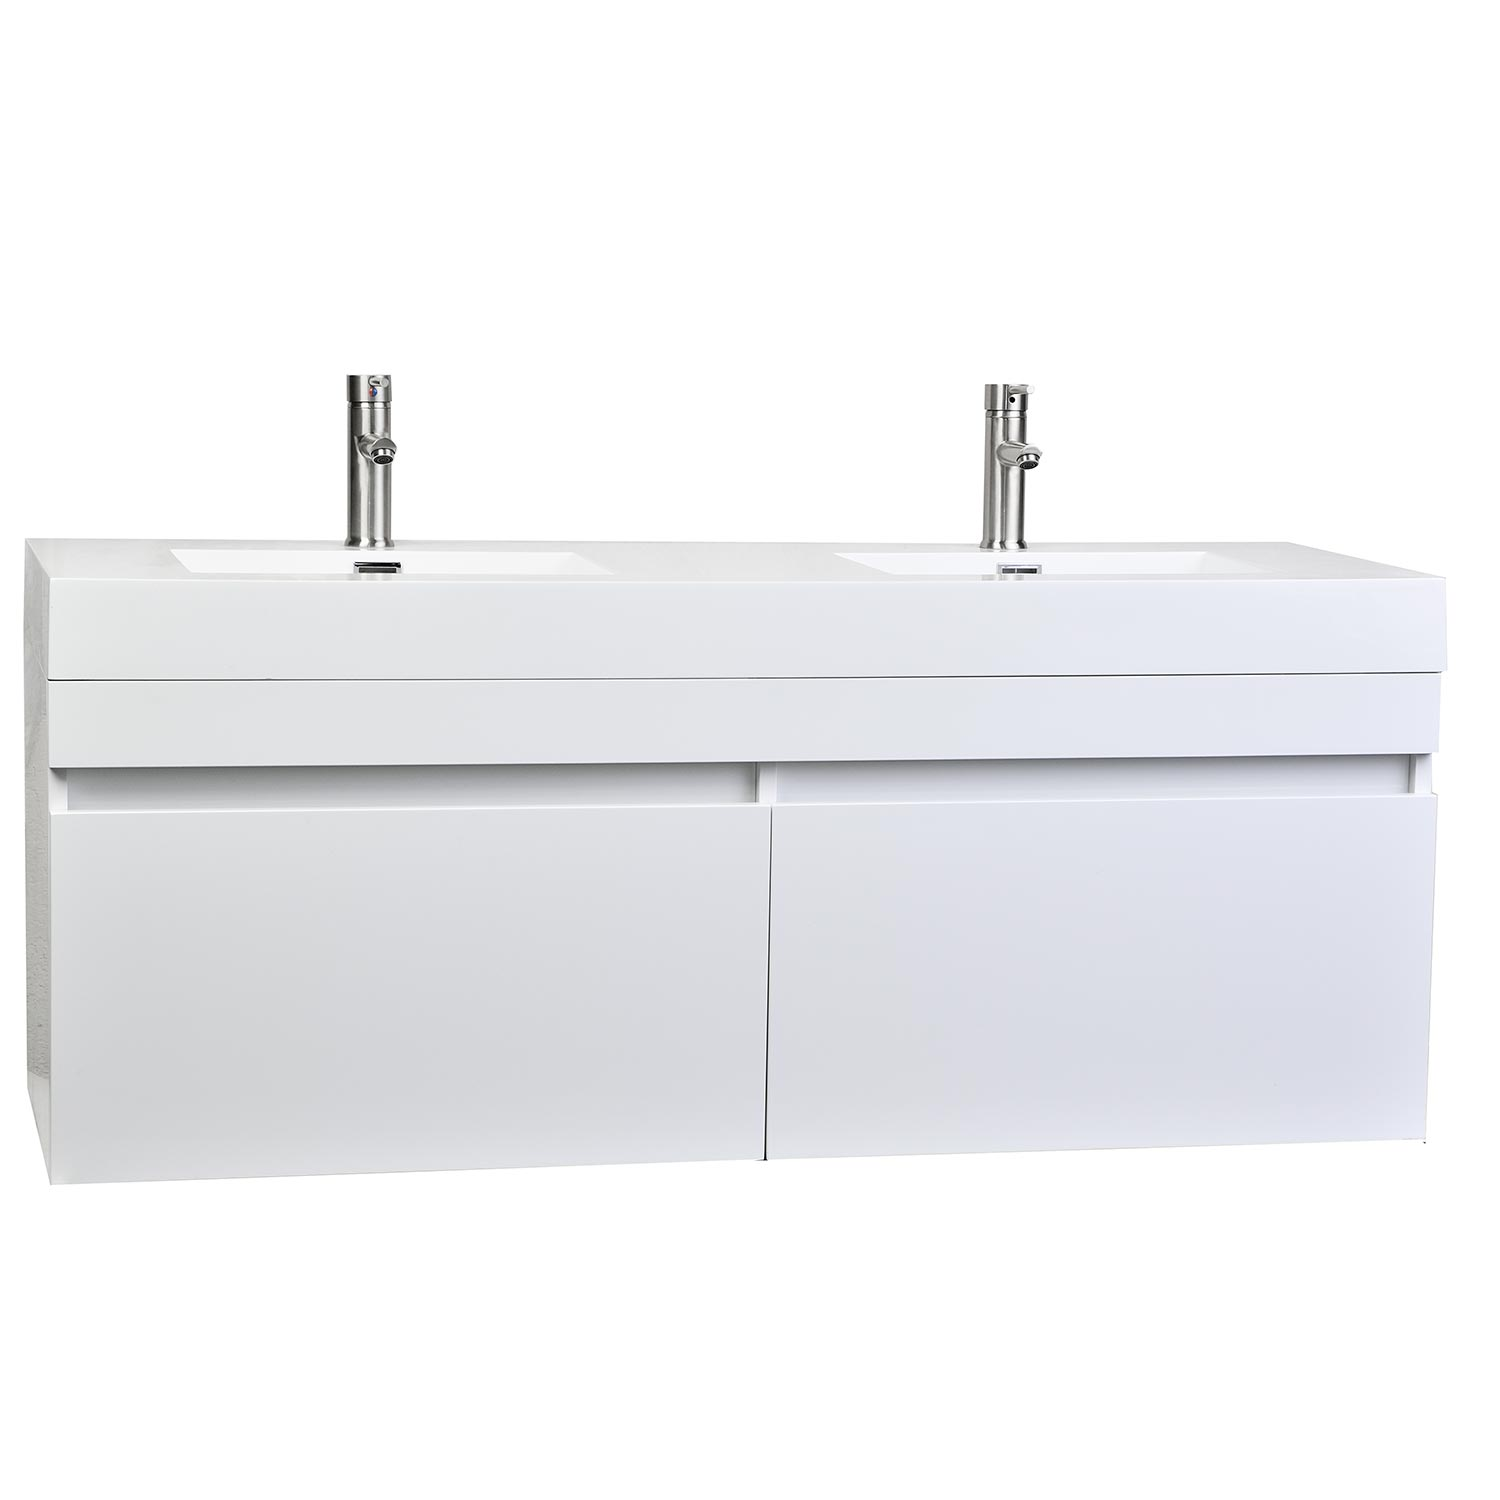 Buy 57 inch modern double sink vanity set in glossy white - Modern double sink bathroom vanities ...